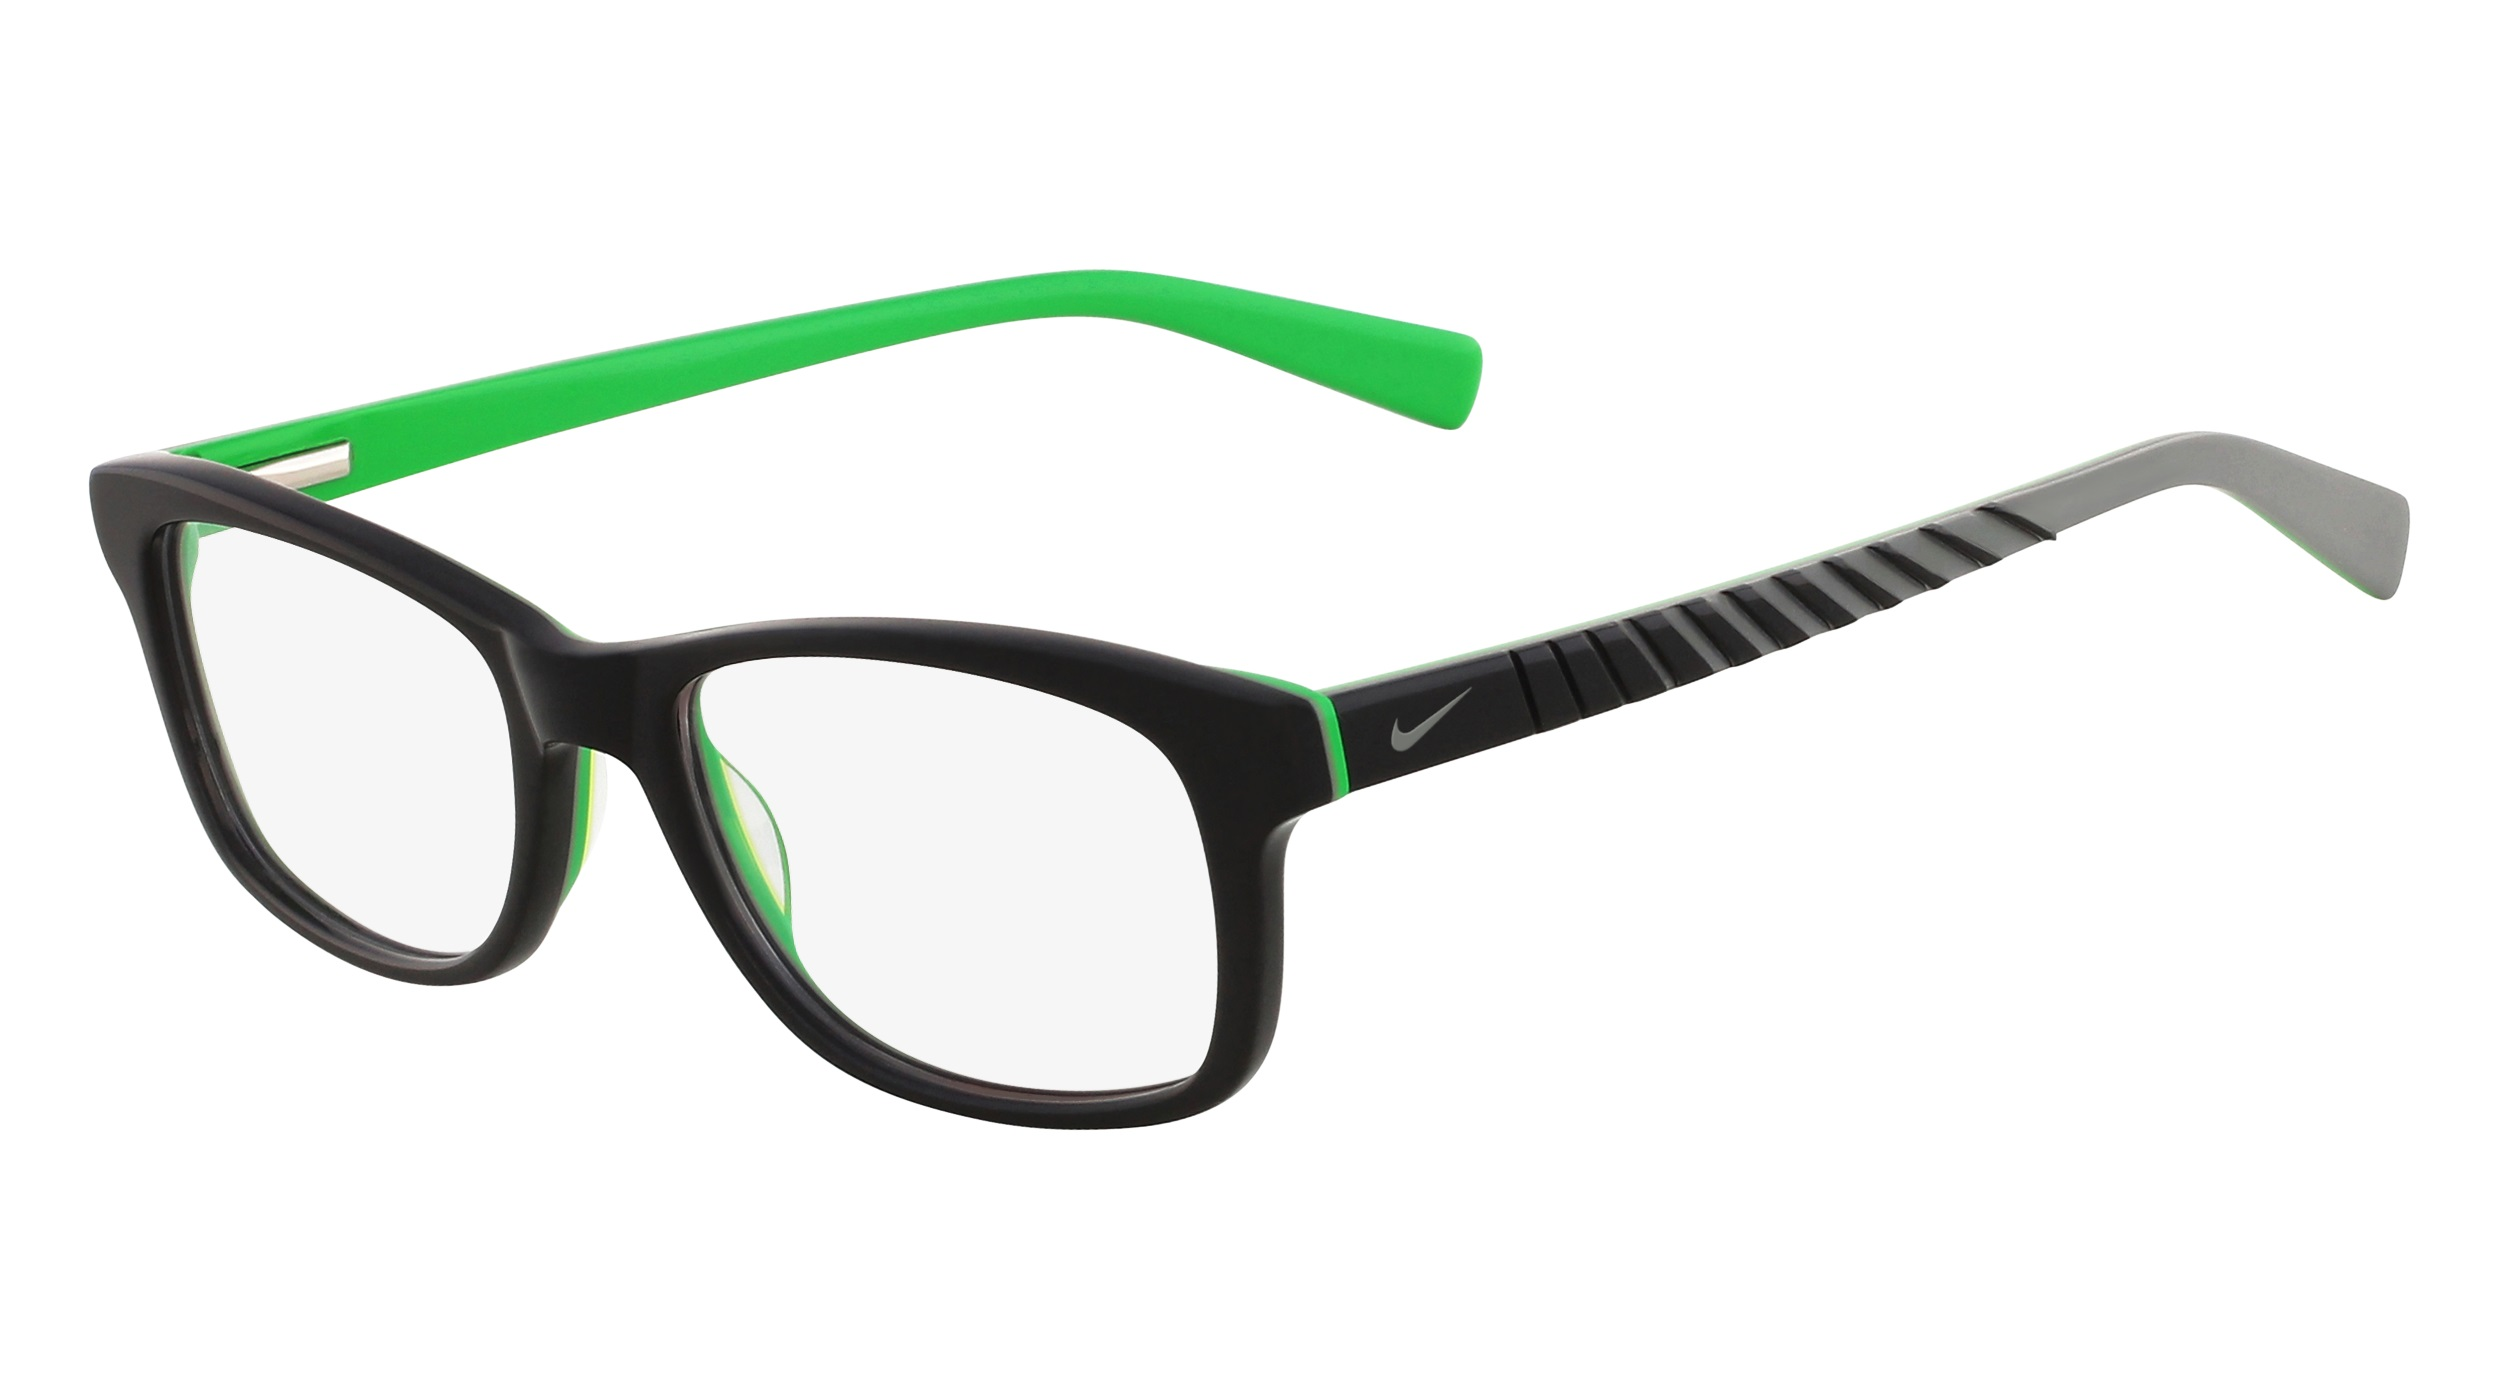 8dc93c6dc150 Nike 5509-025 Kids Eyeglasses Black Cool Grey Nike5509-025 - Optiwow